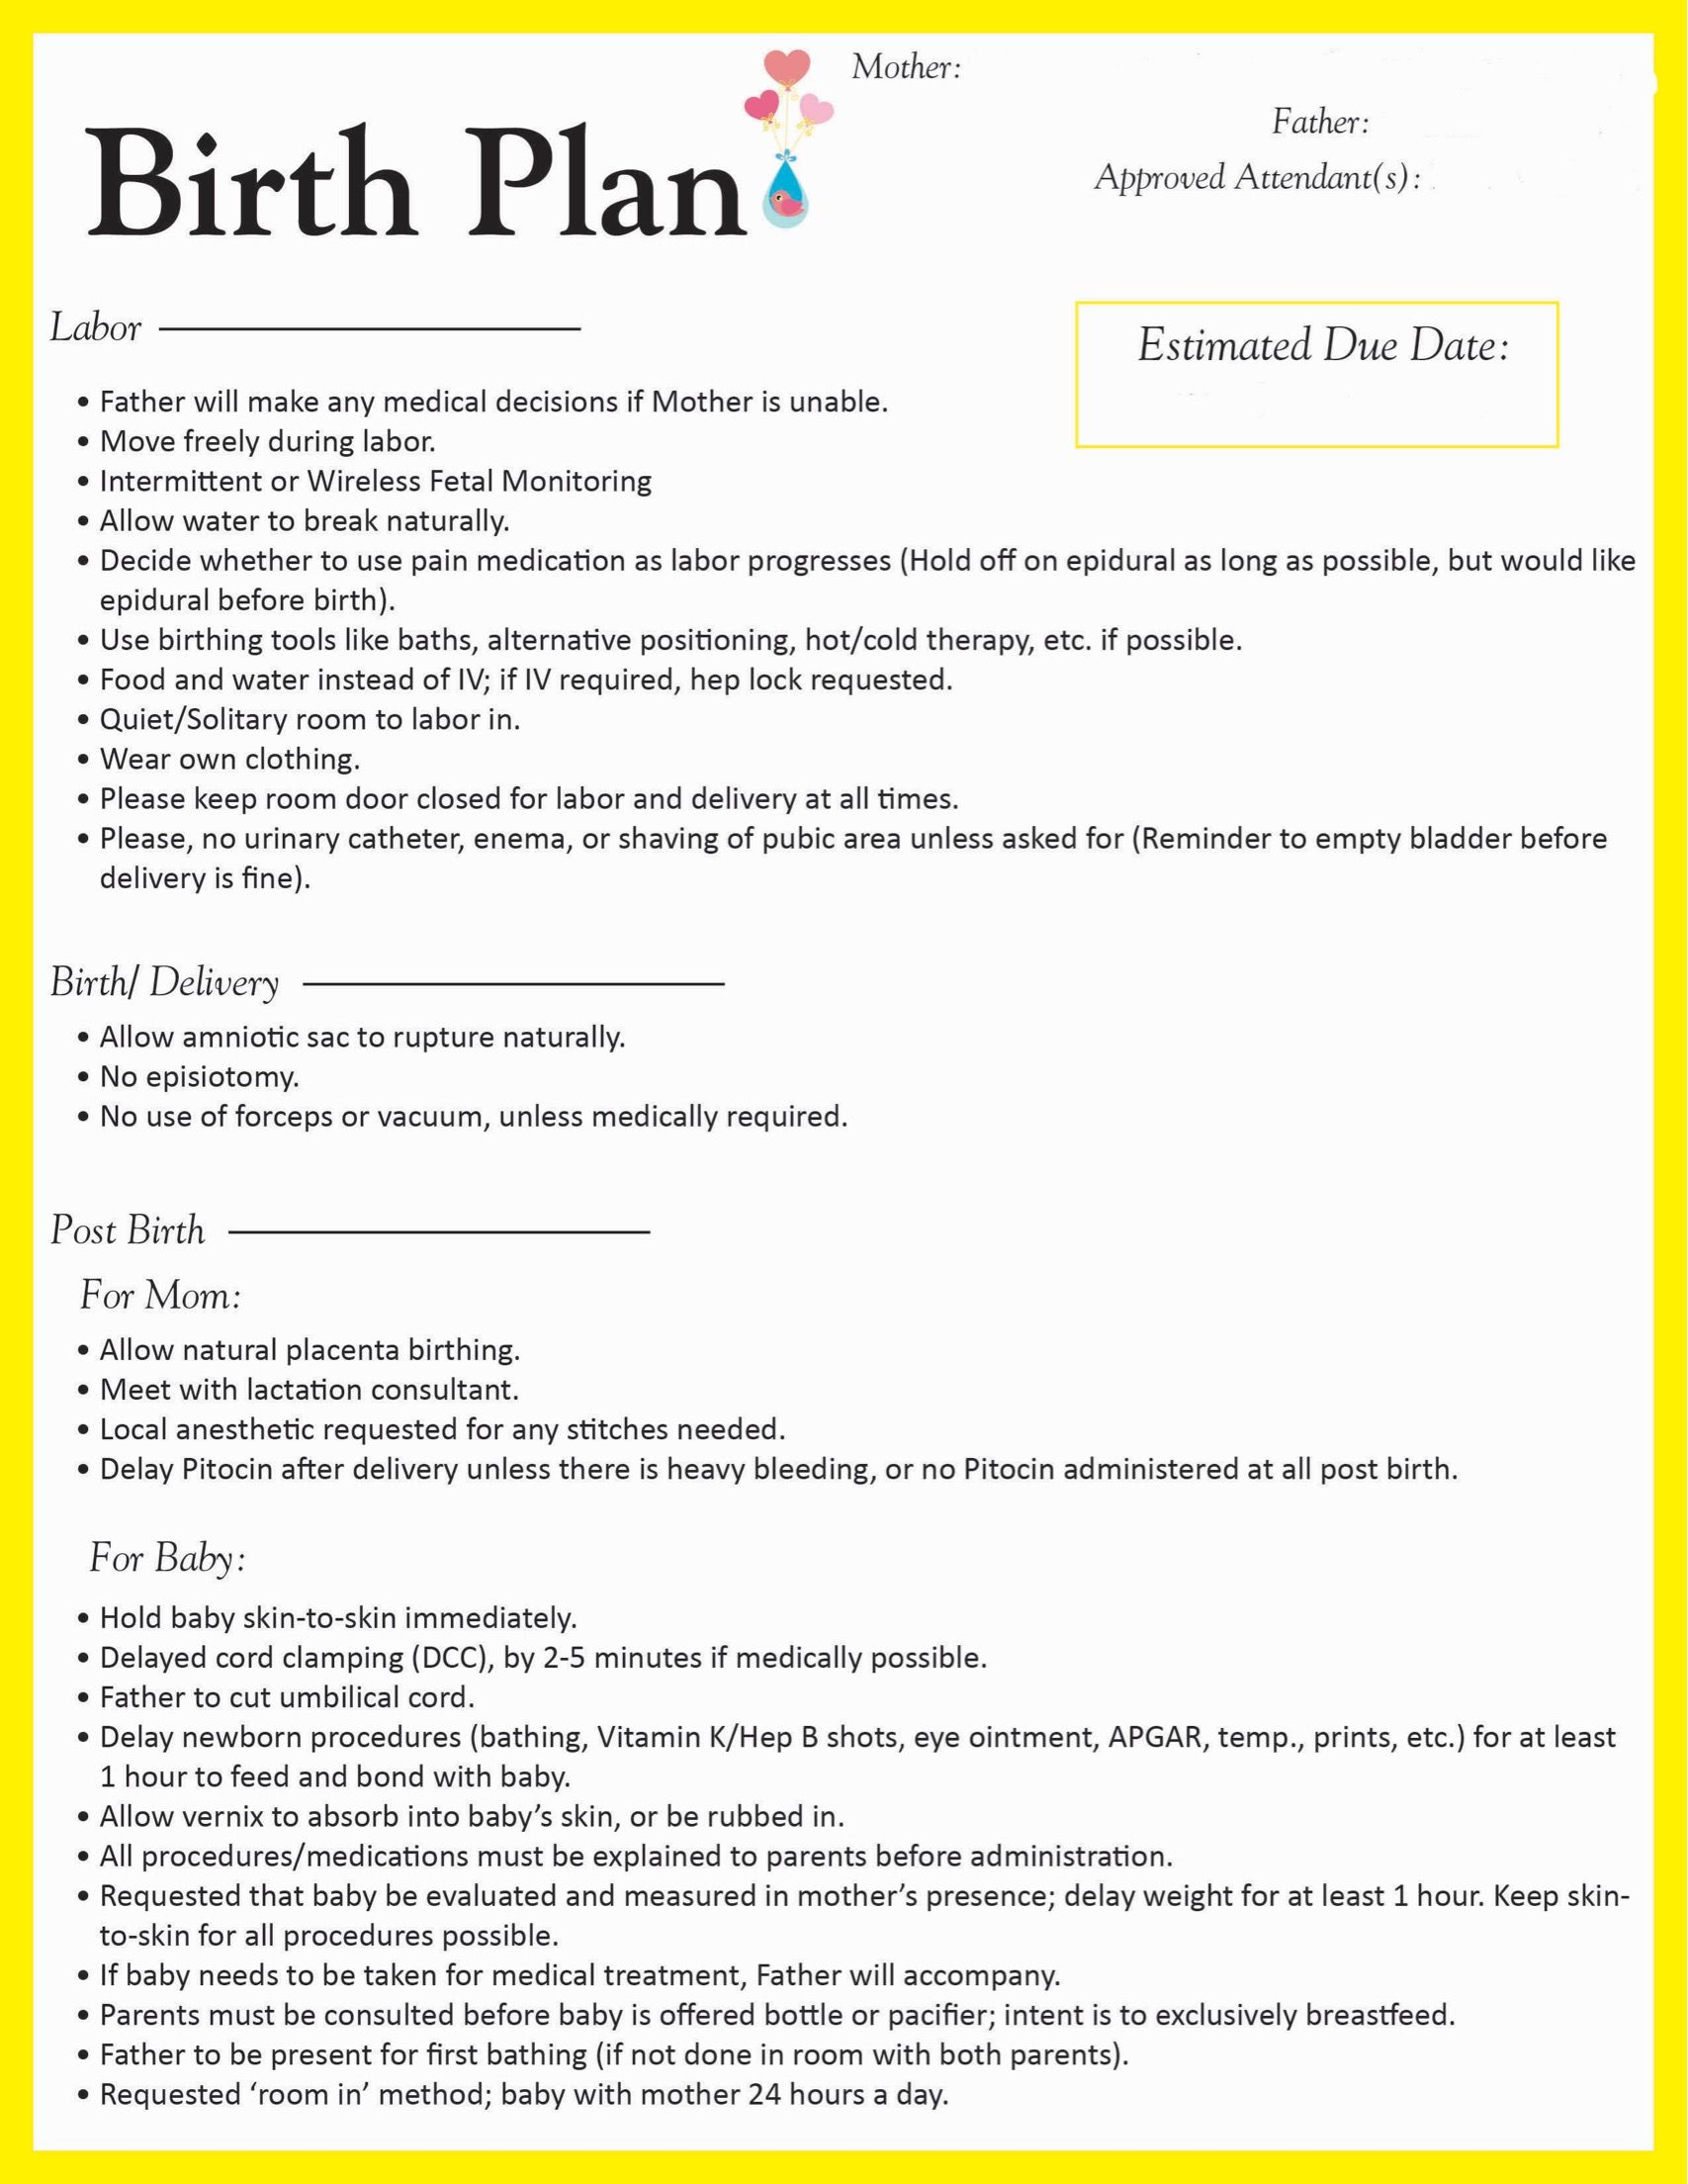 Birth Plan- Going To Make Some Edits, But This Is A Good General   Birth Plan Worksheet Printable